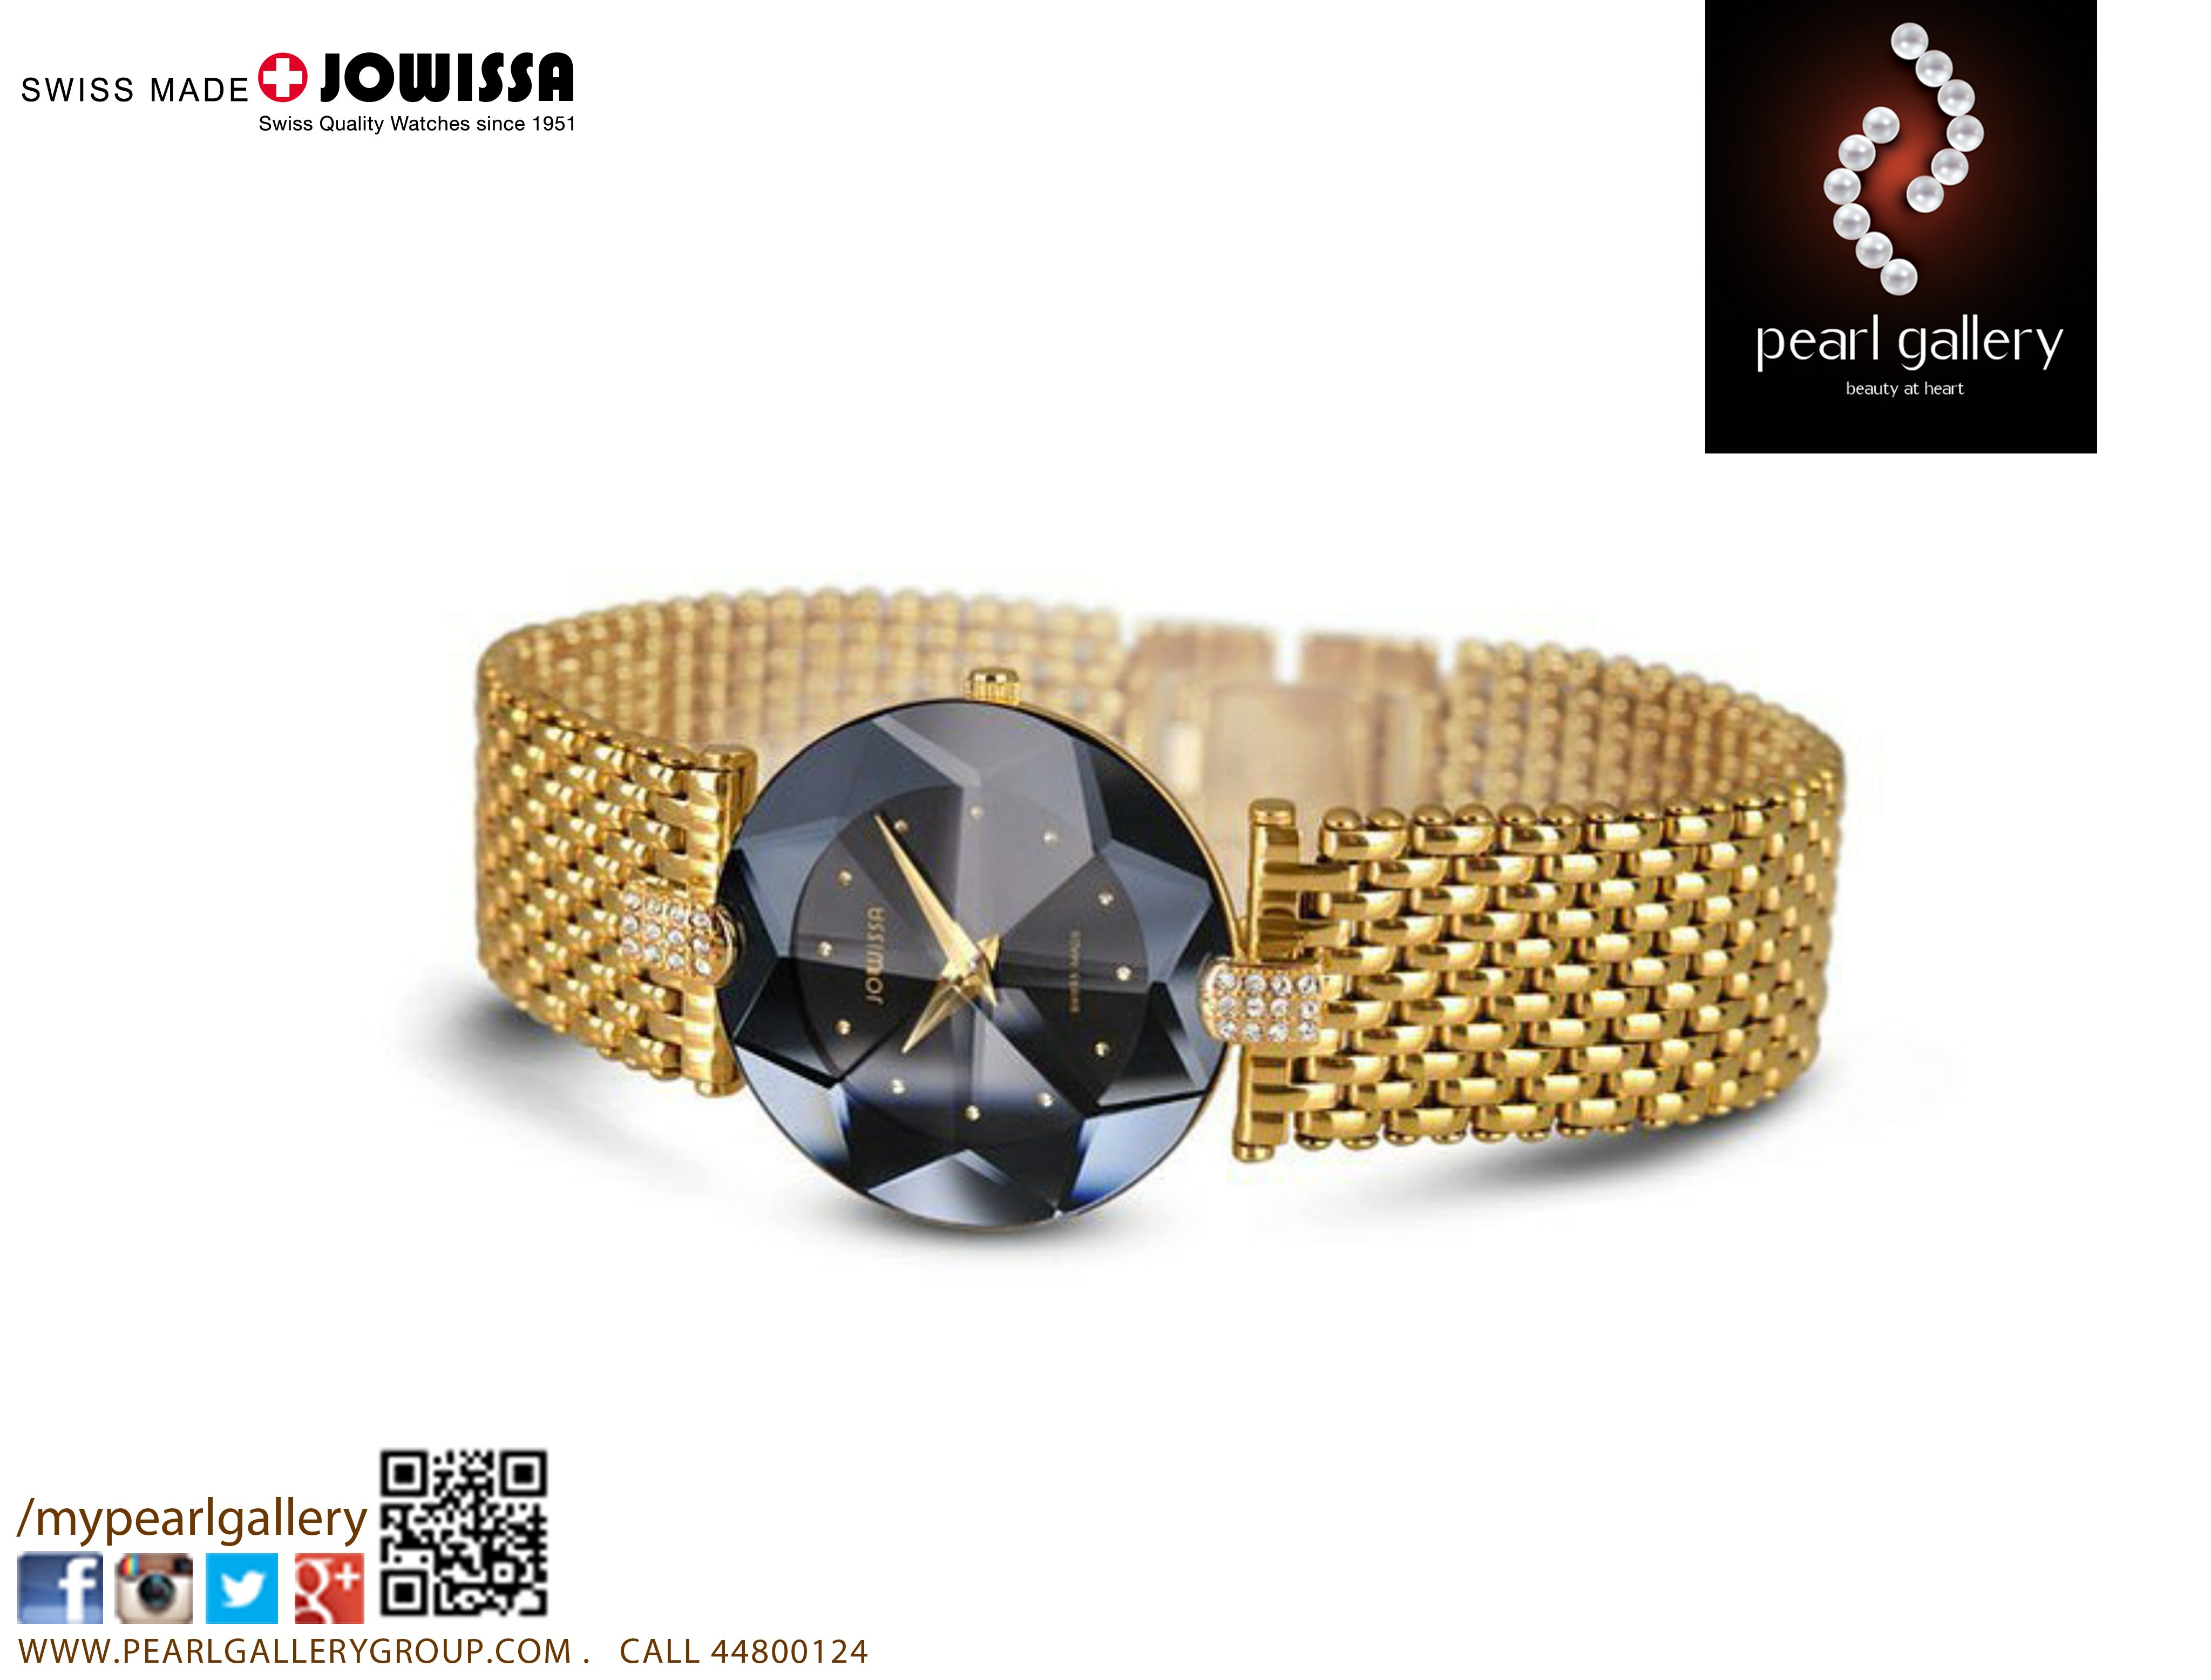 Discover Our Selection Of Jowissa Watches Find Swiss Watches For Men And Women On Quality Watch Watch Collection Jowissa